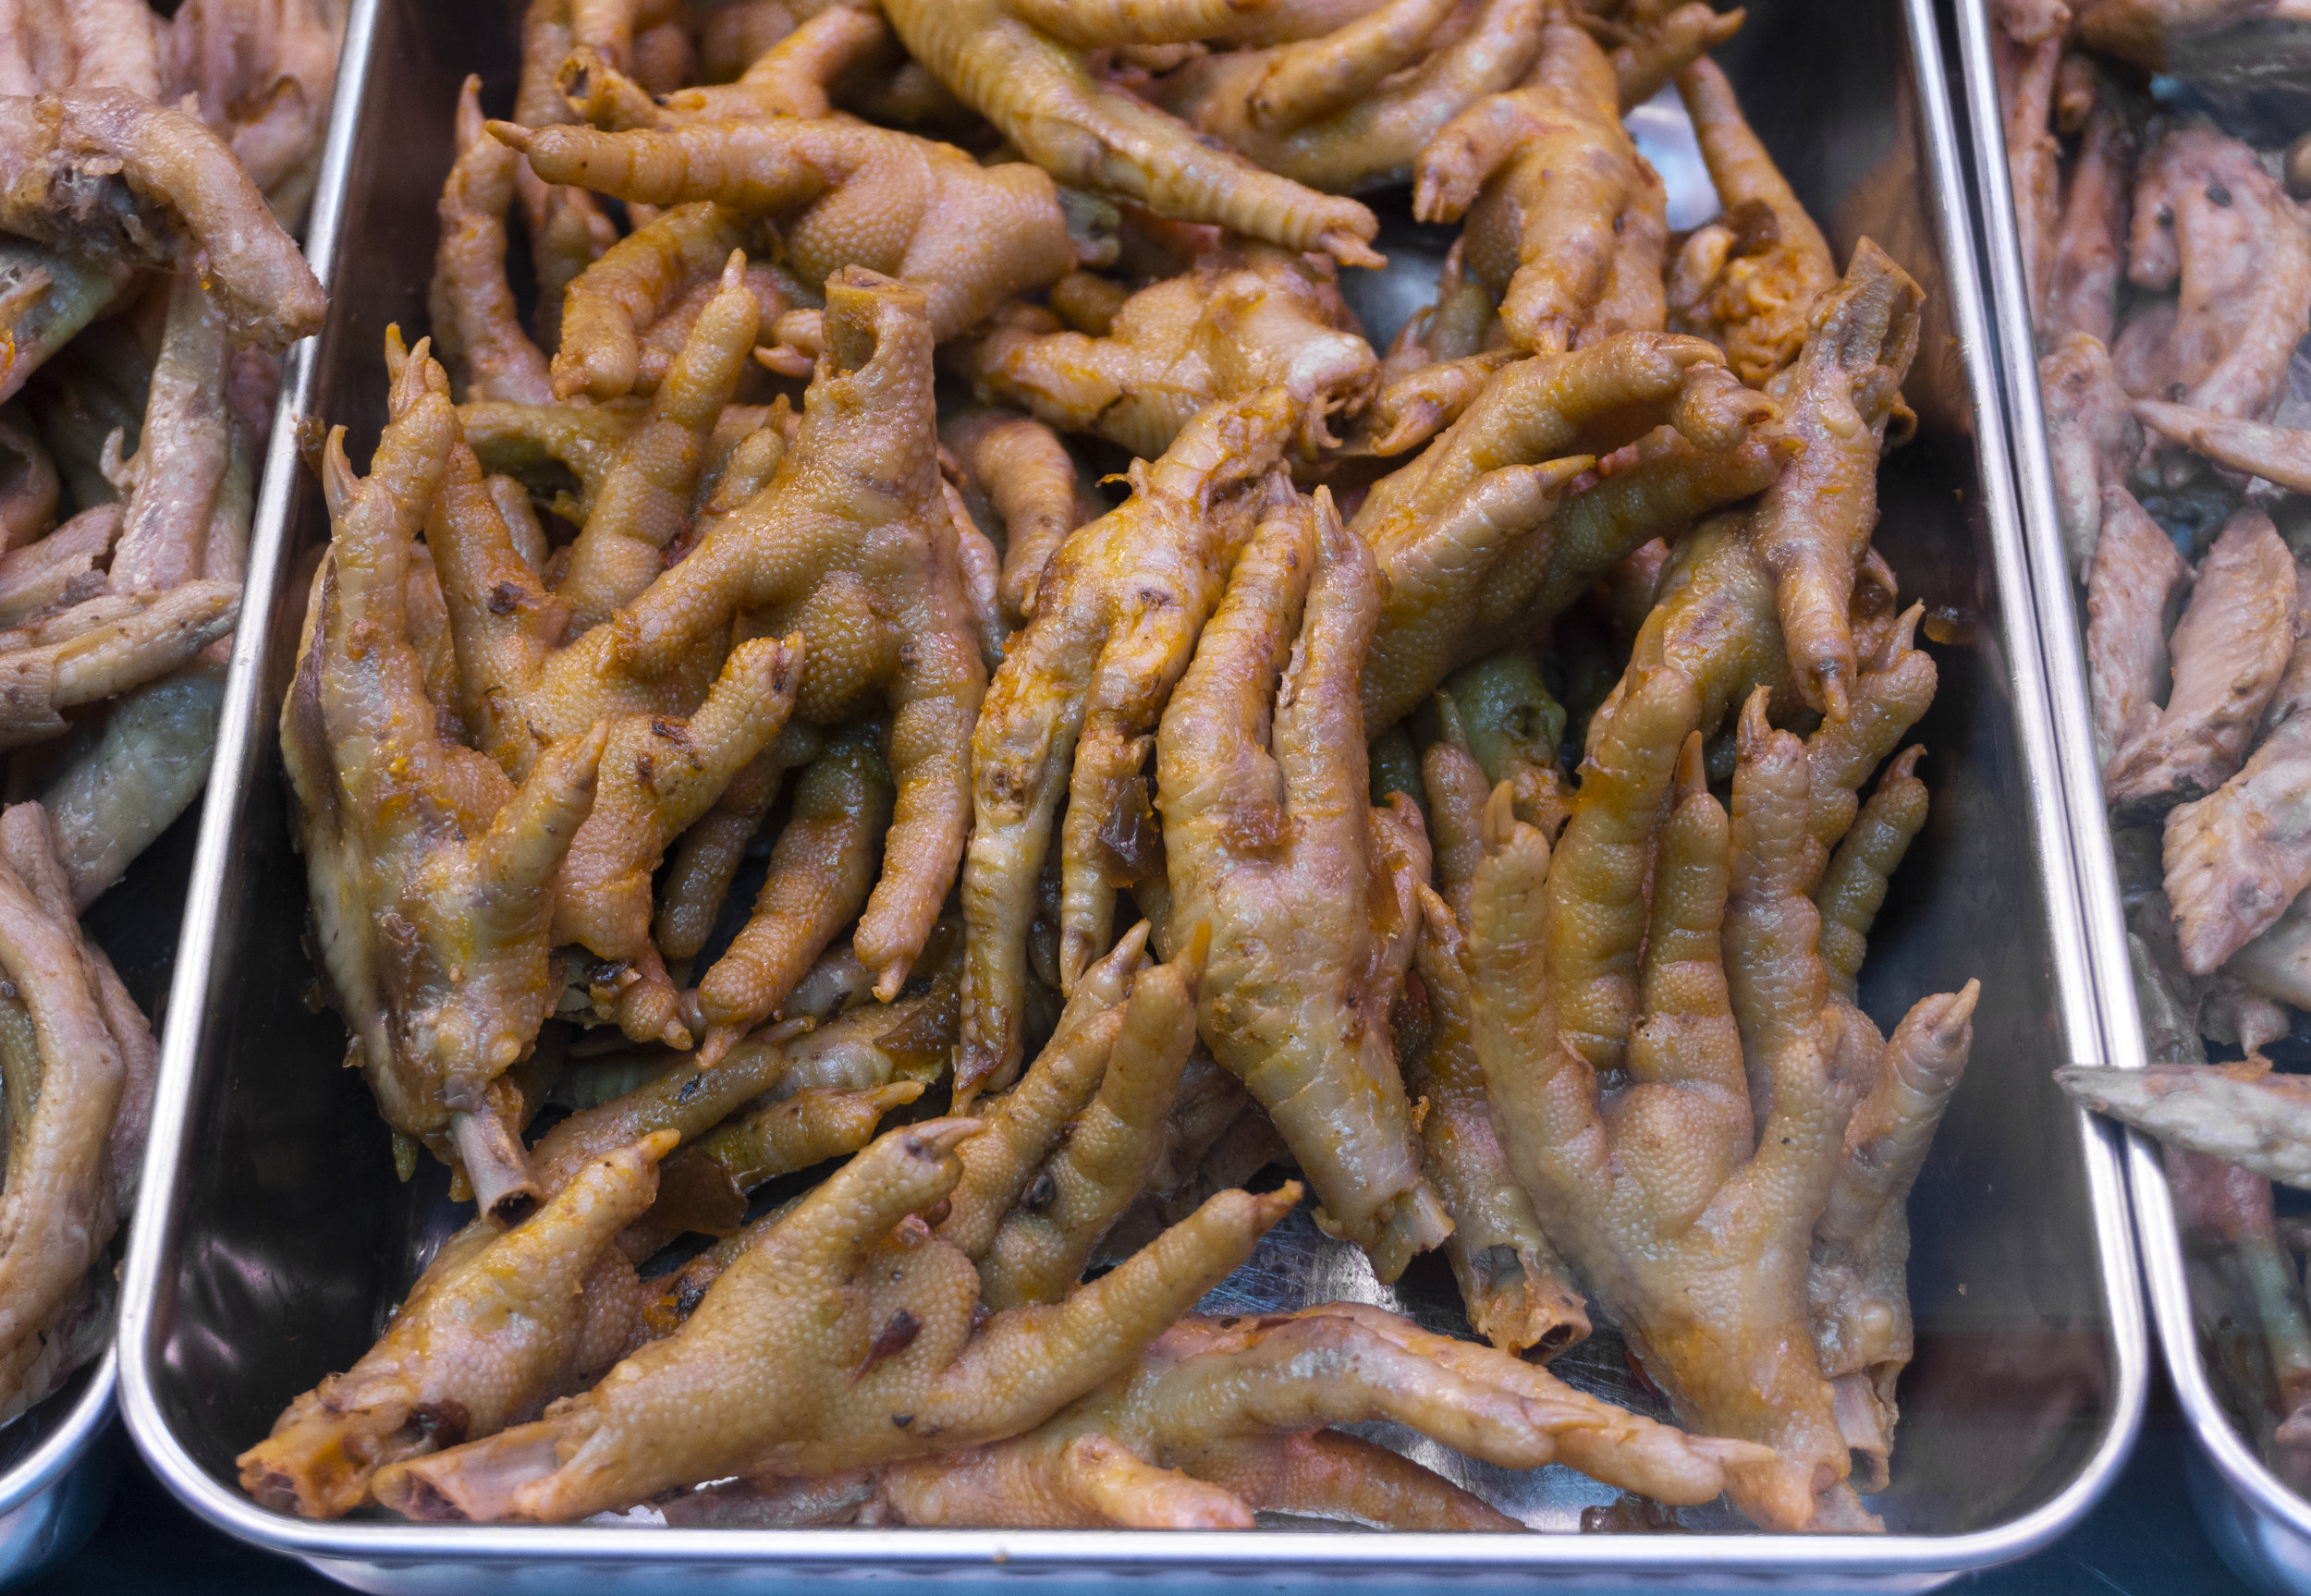 Why China and the U.S. Fight Over Chicken Feet - International squabbles have stopped a once-mighty chicken foot trade.